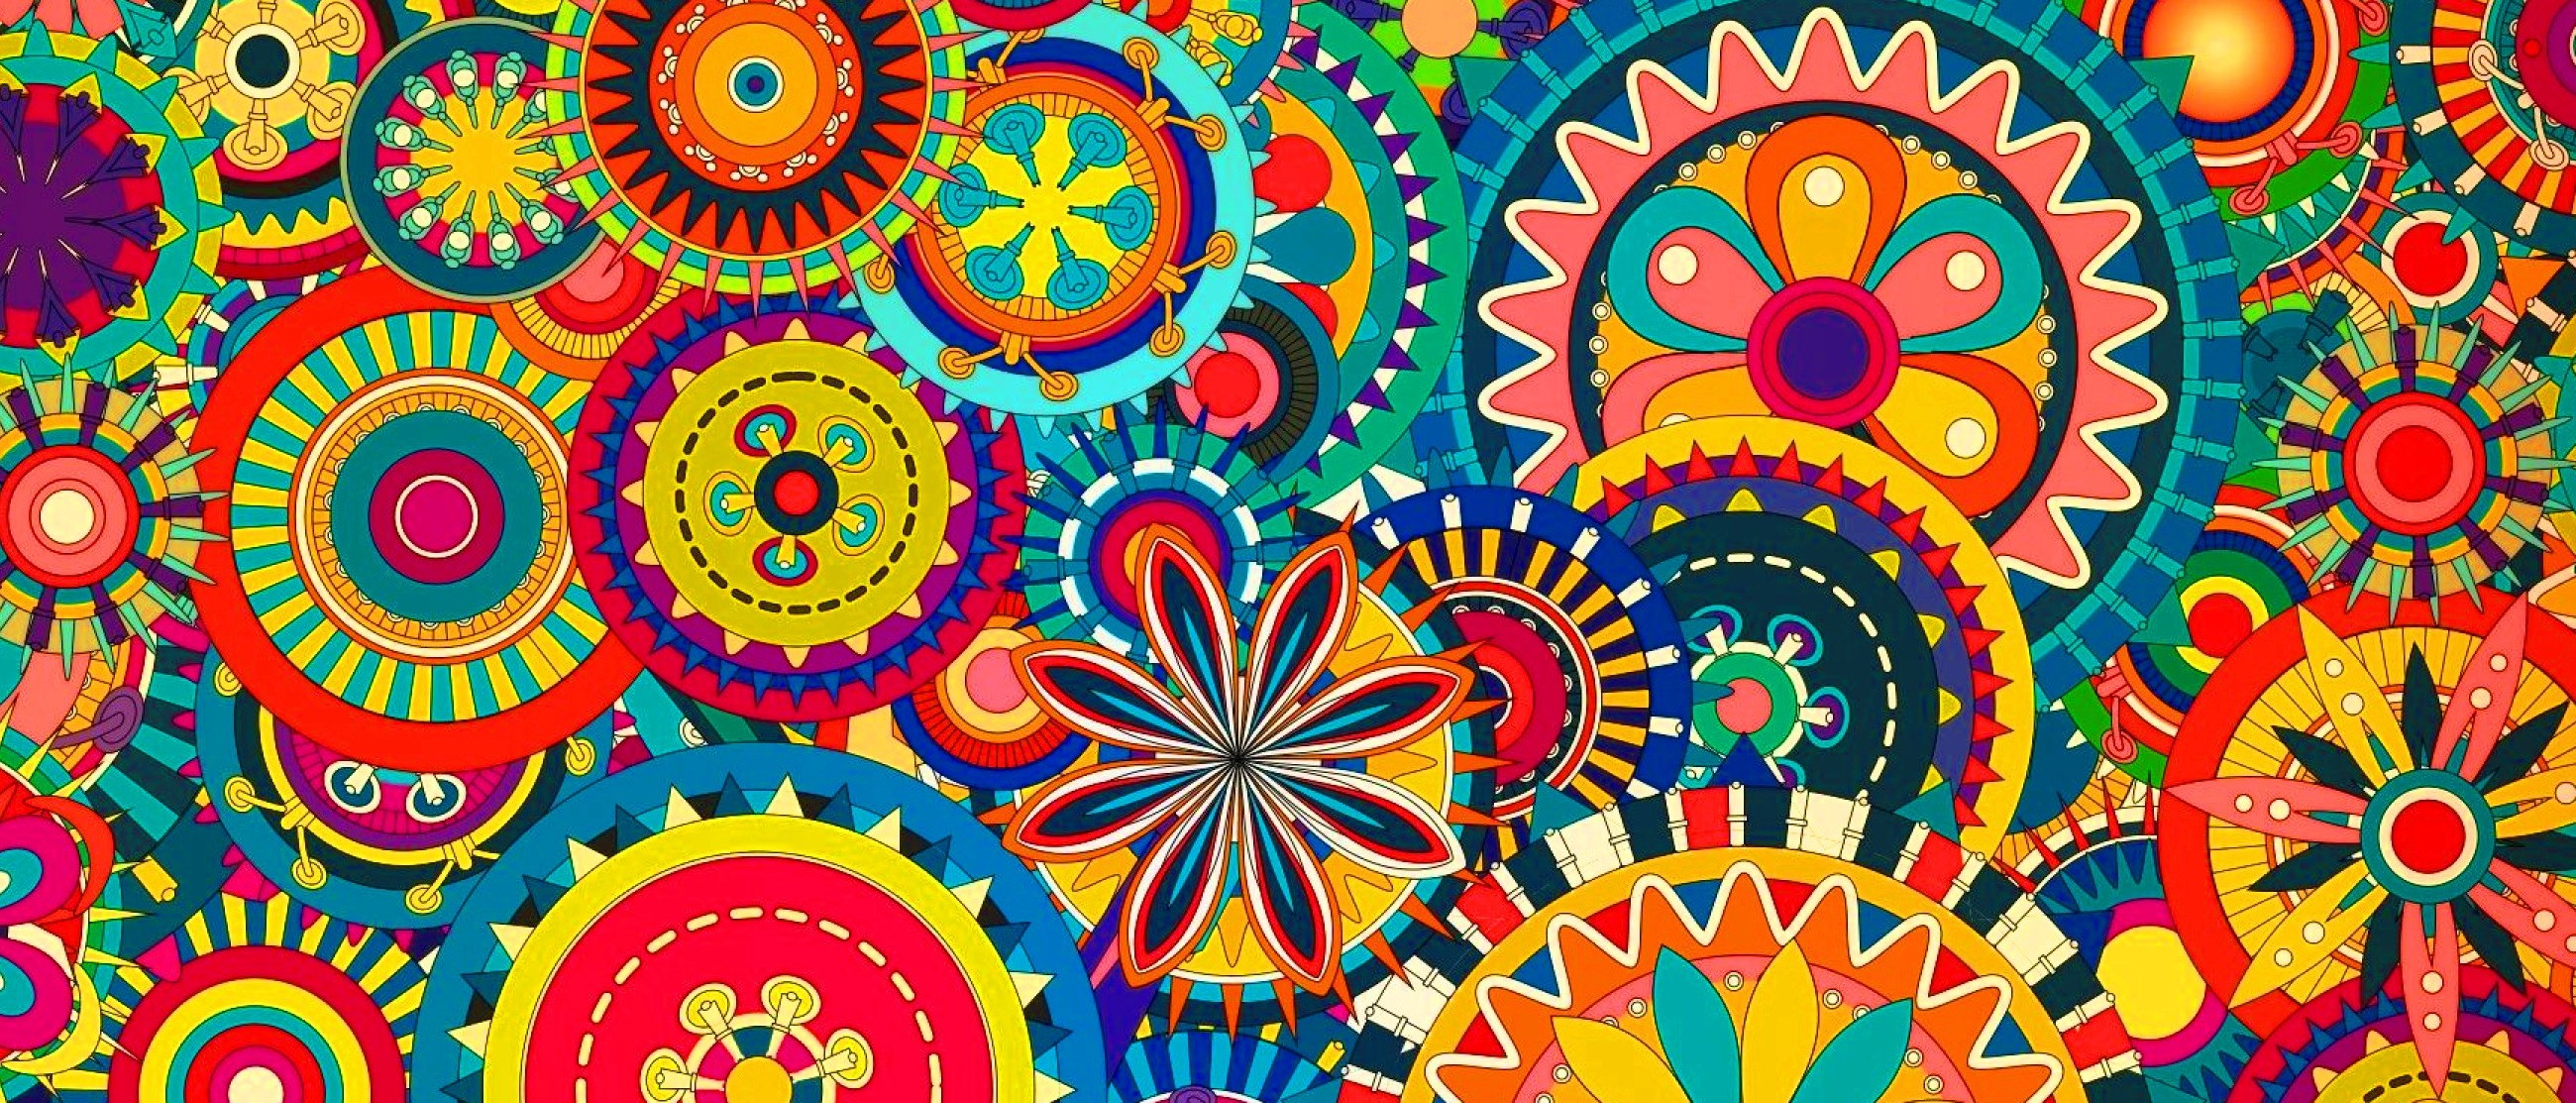 mandala united states and bright colors